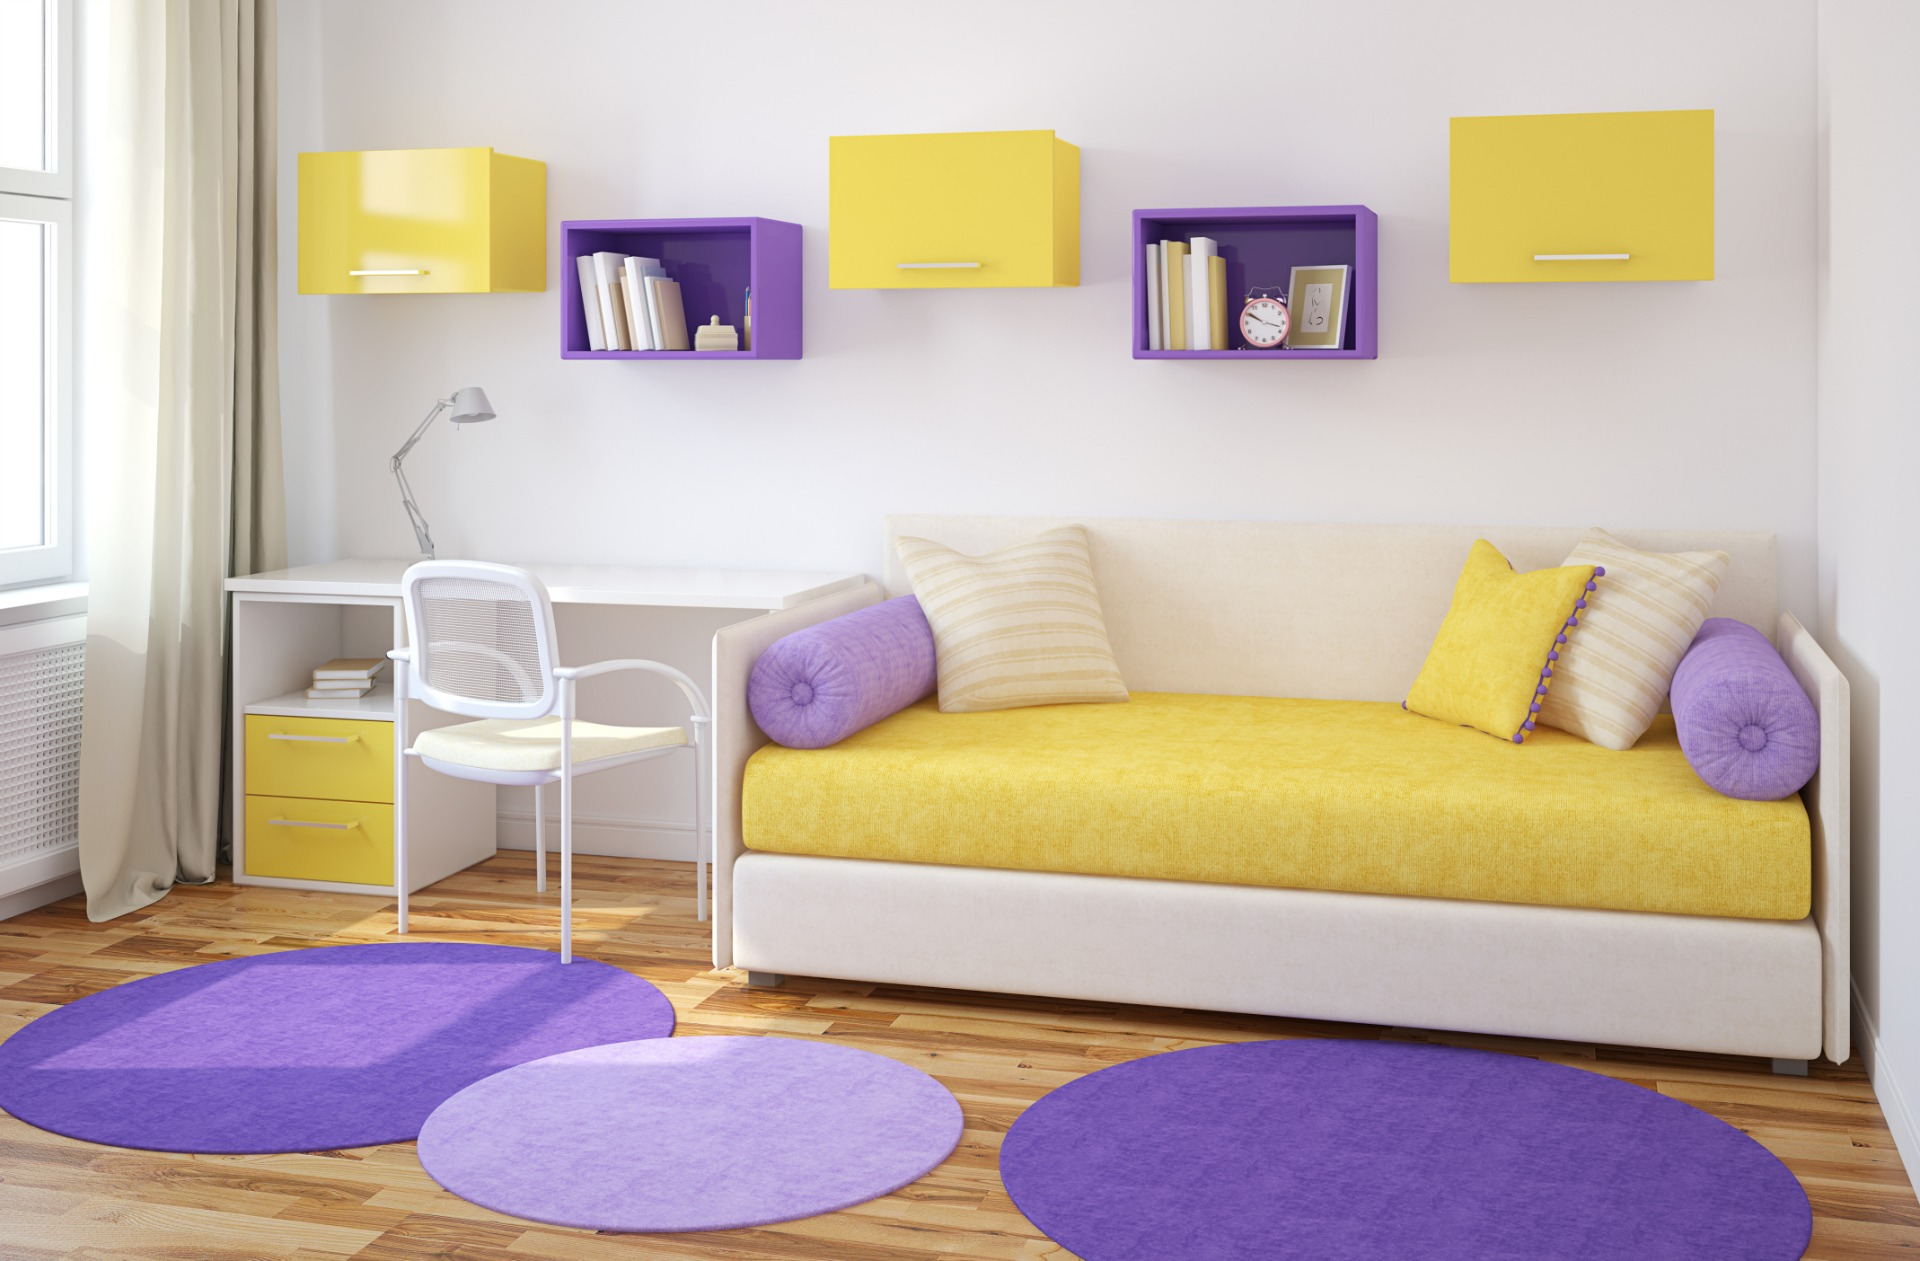 How to make your home look like it was professionally designed